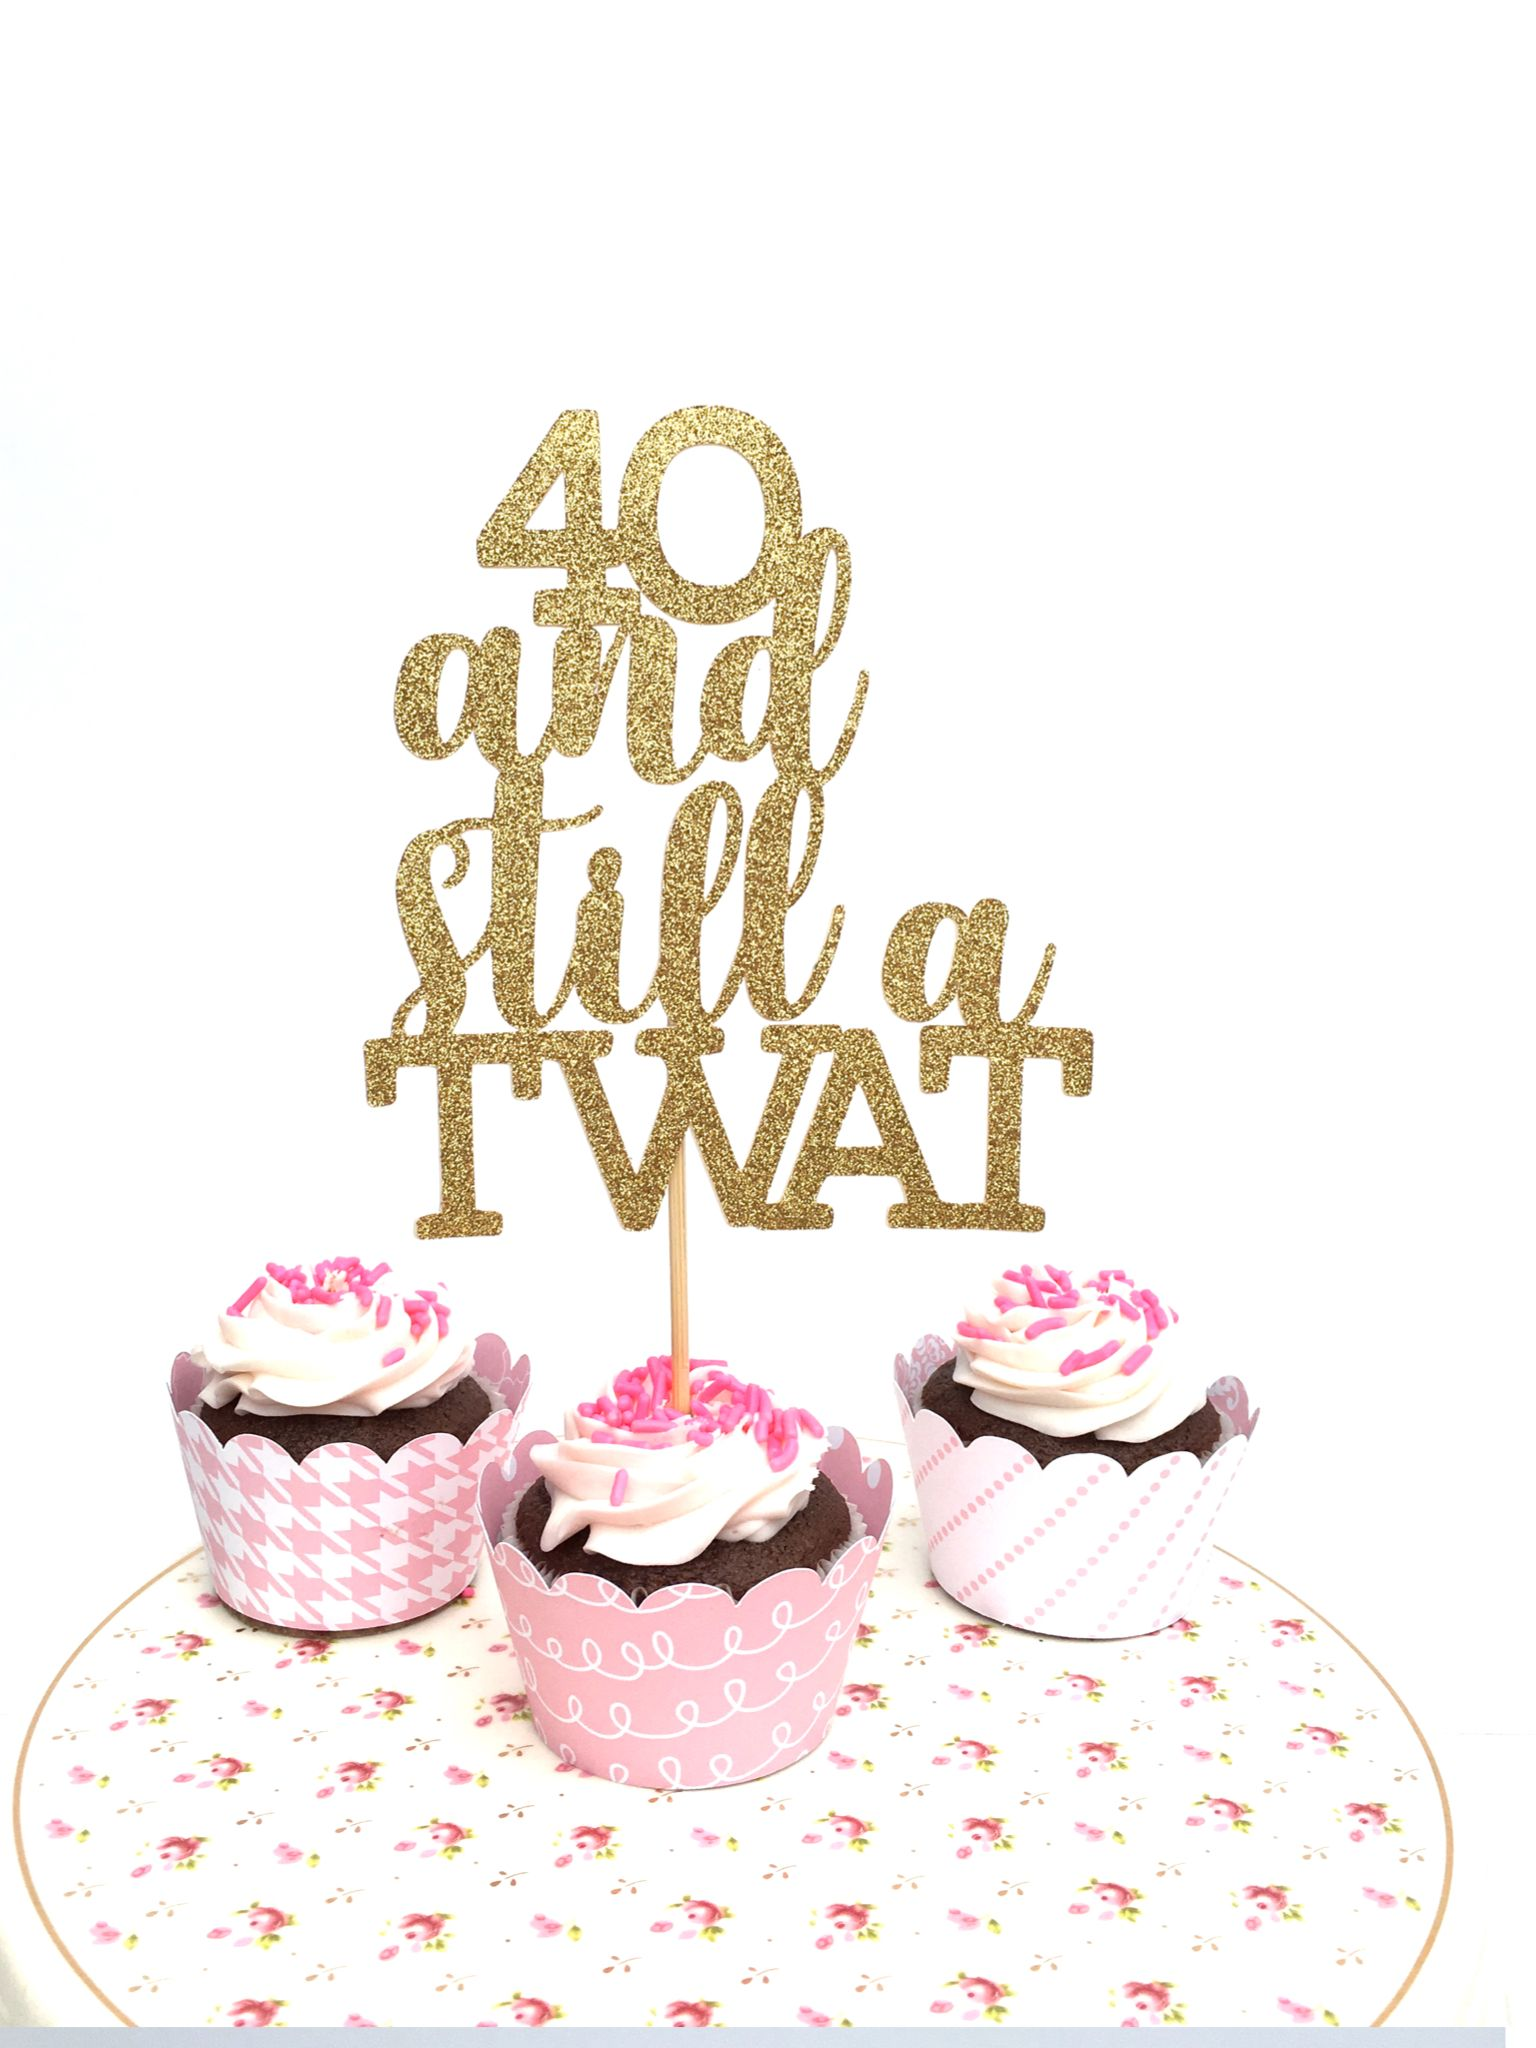 Pin on Rude cake toppers